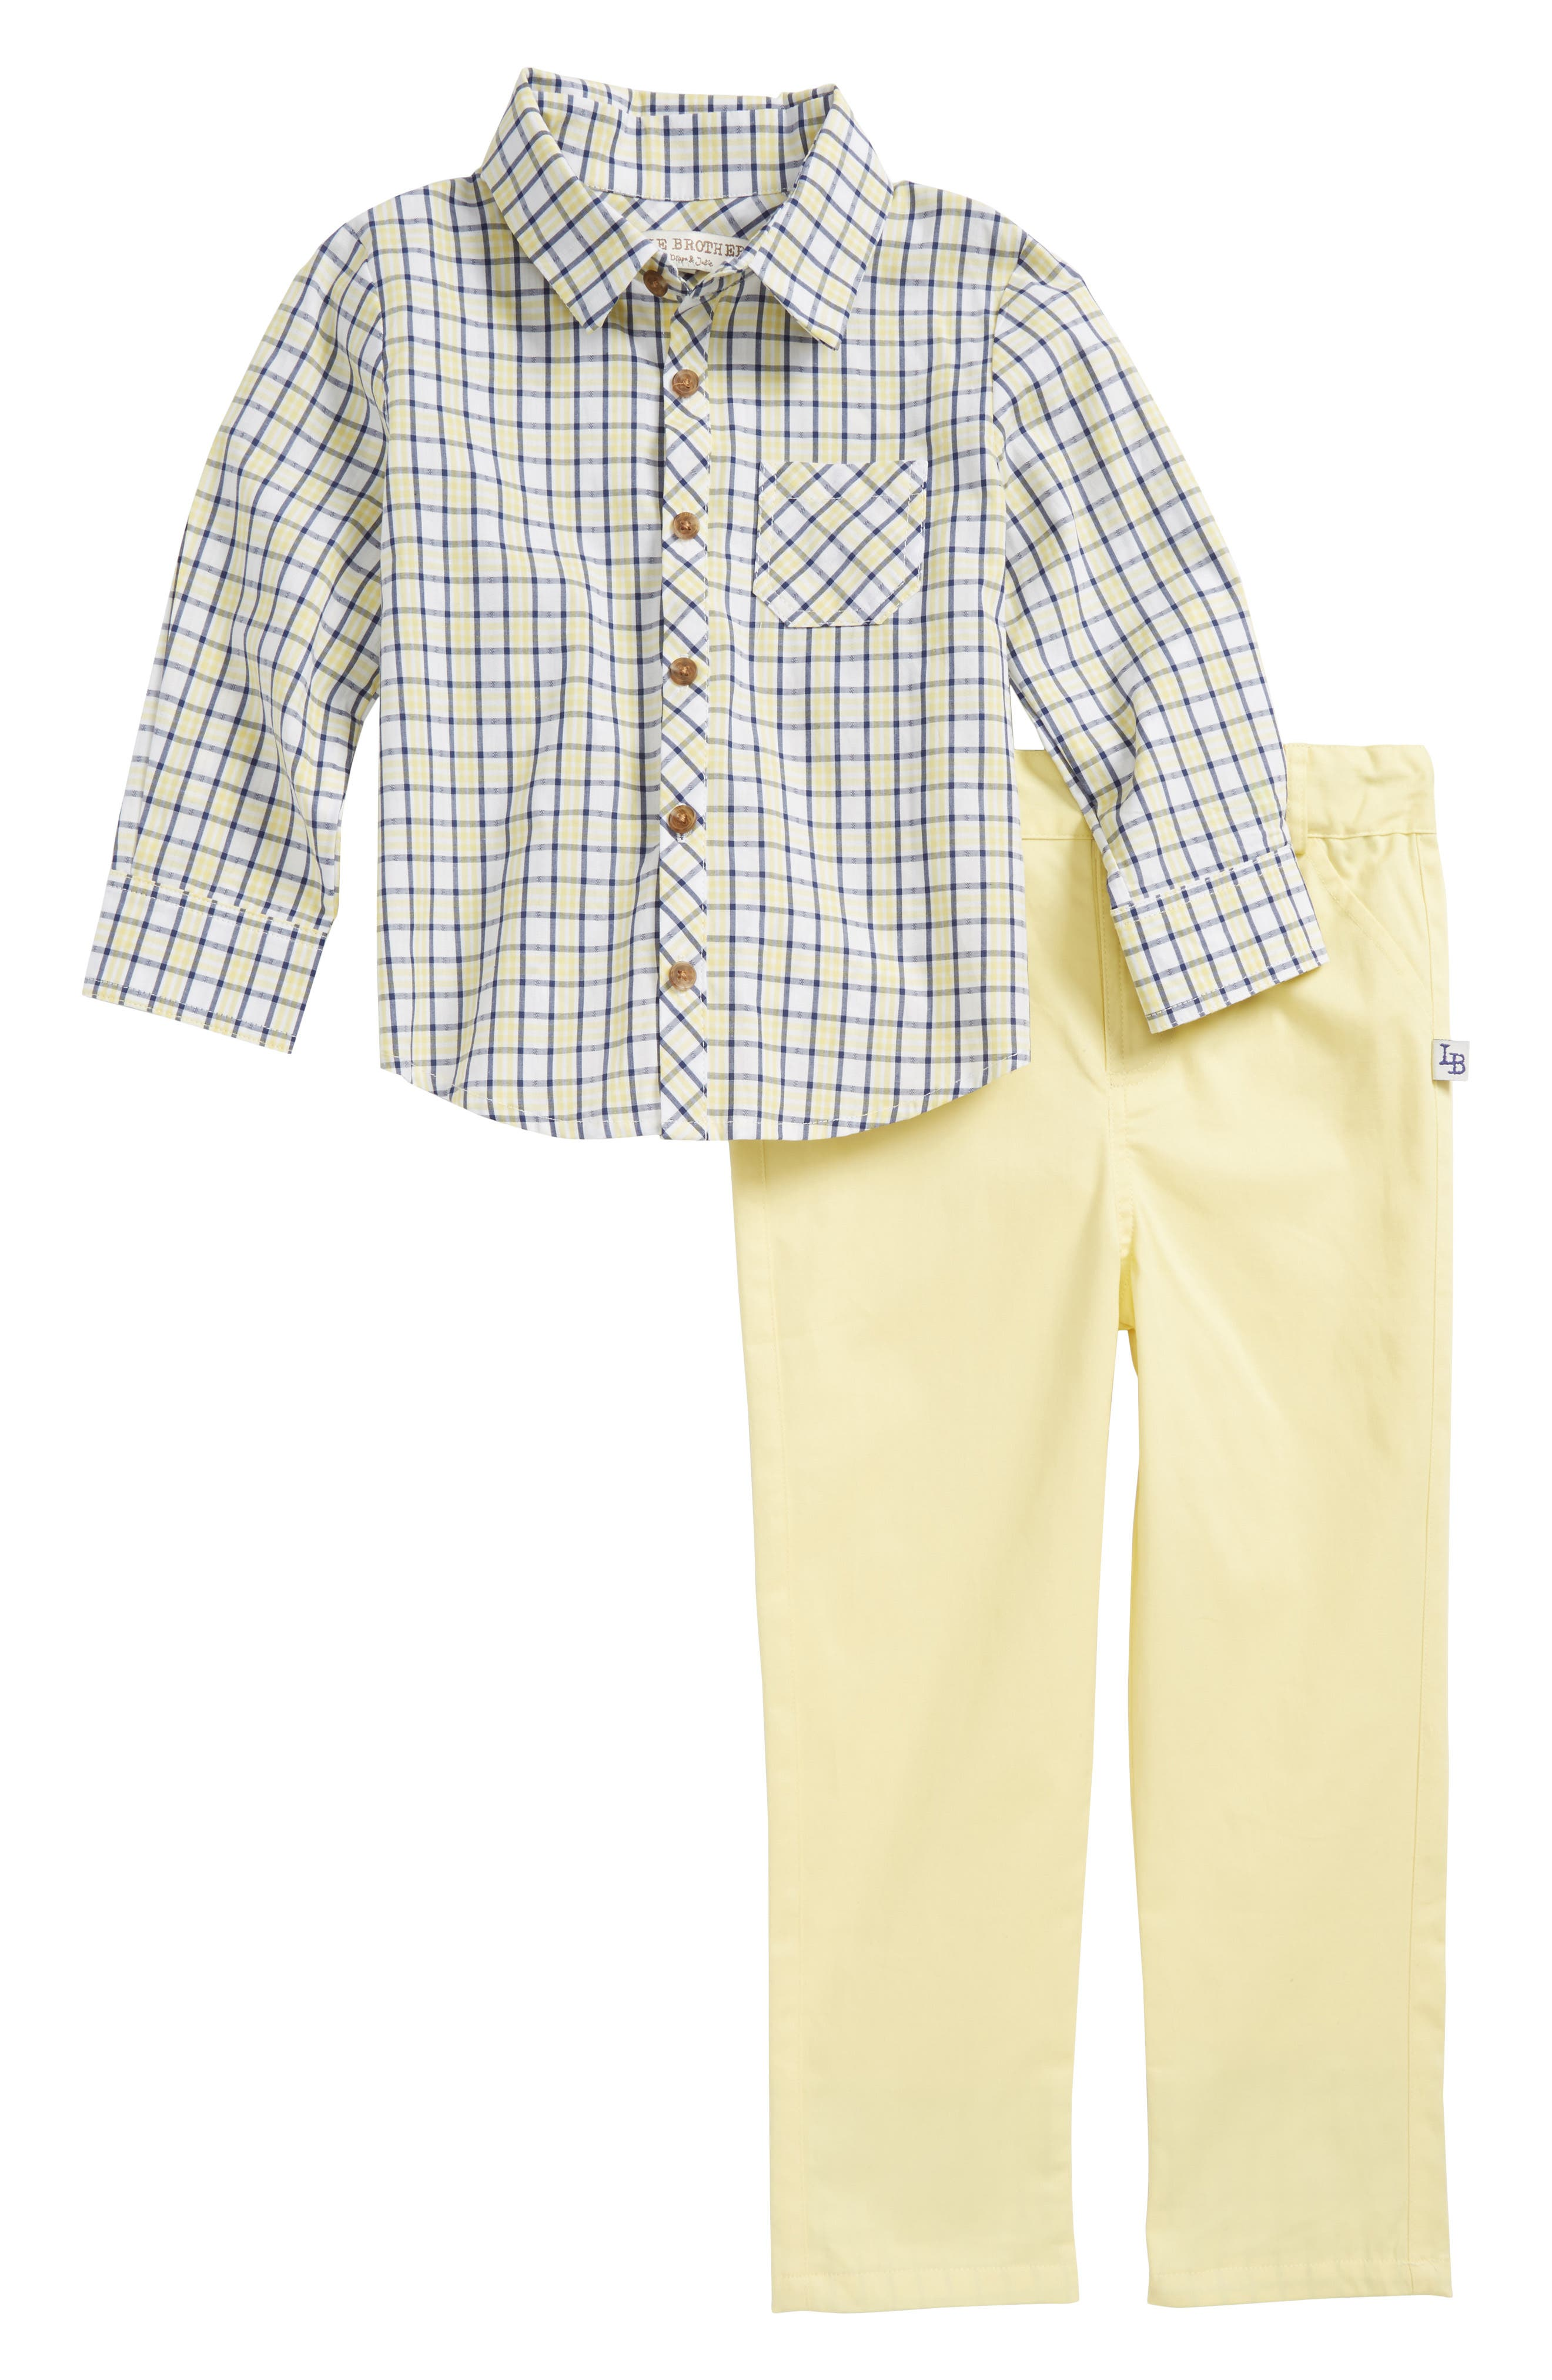 Plaid Top & Pants Set,                         Main,                         color, Yellow/ Blue